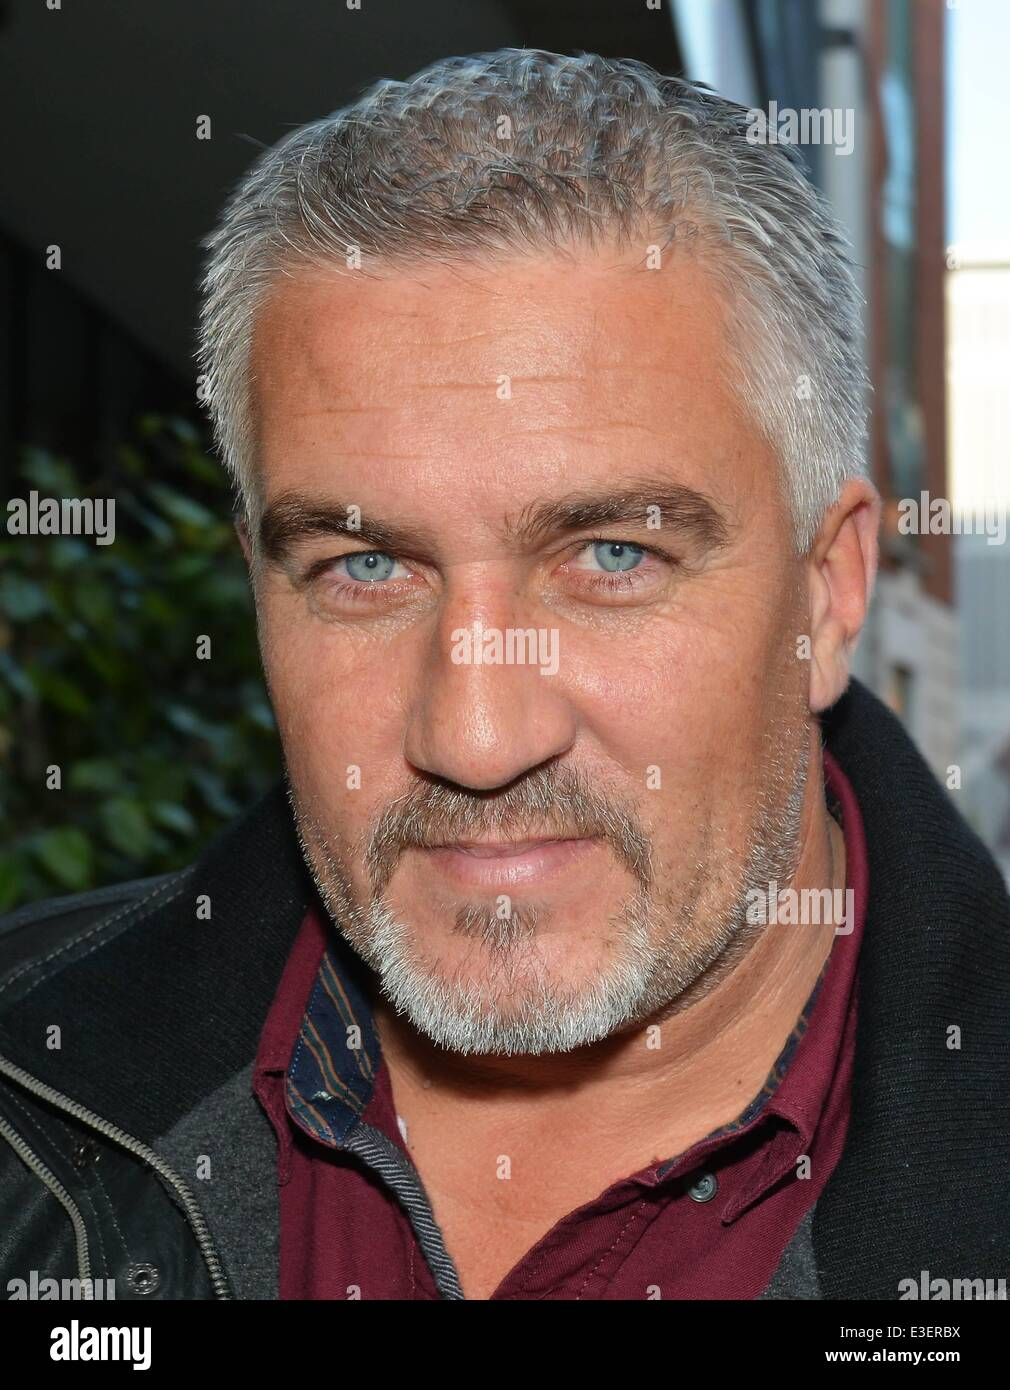 Great British Bake Off celebrity chef Paul Hollywood at ...